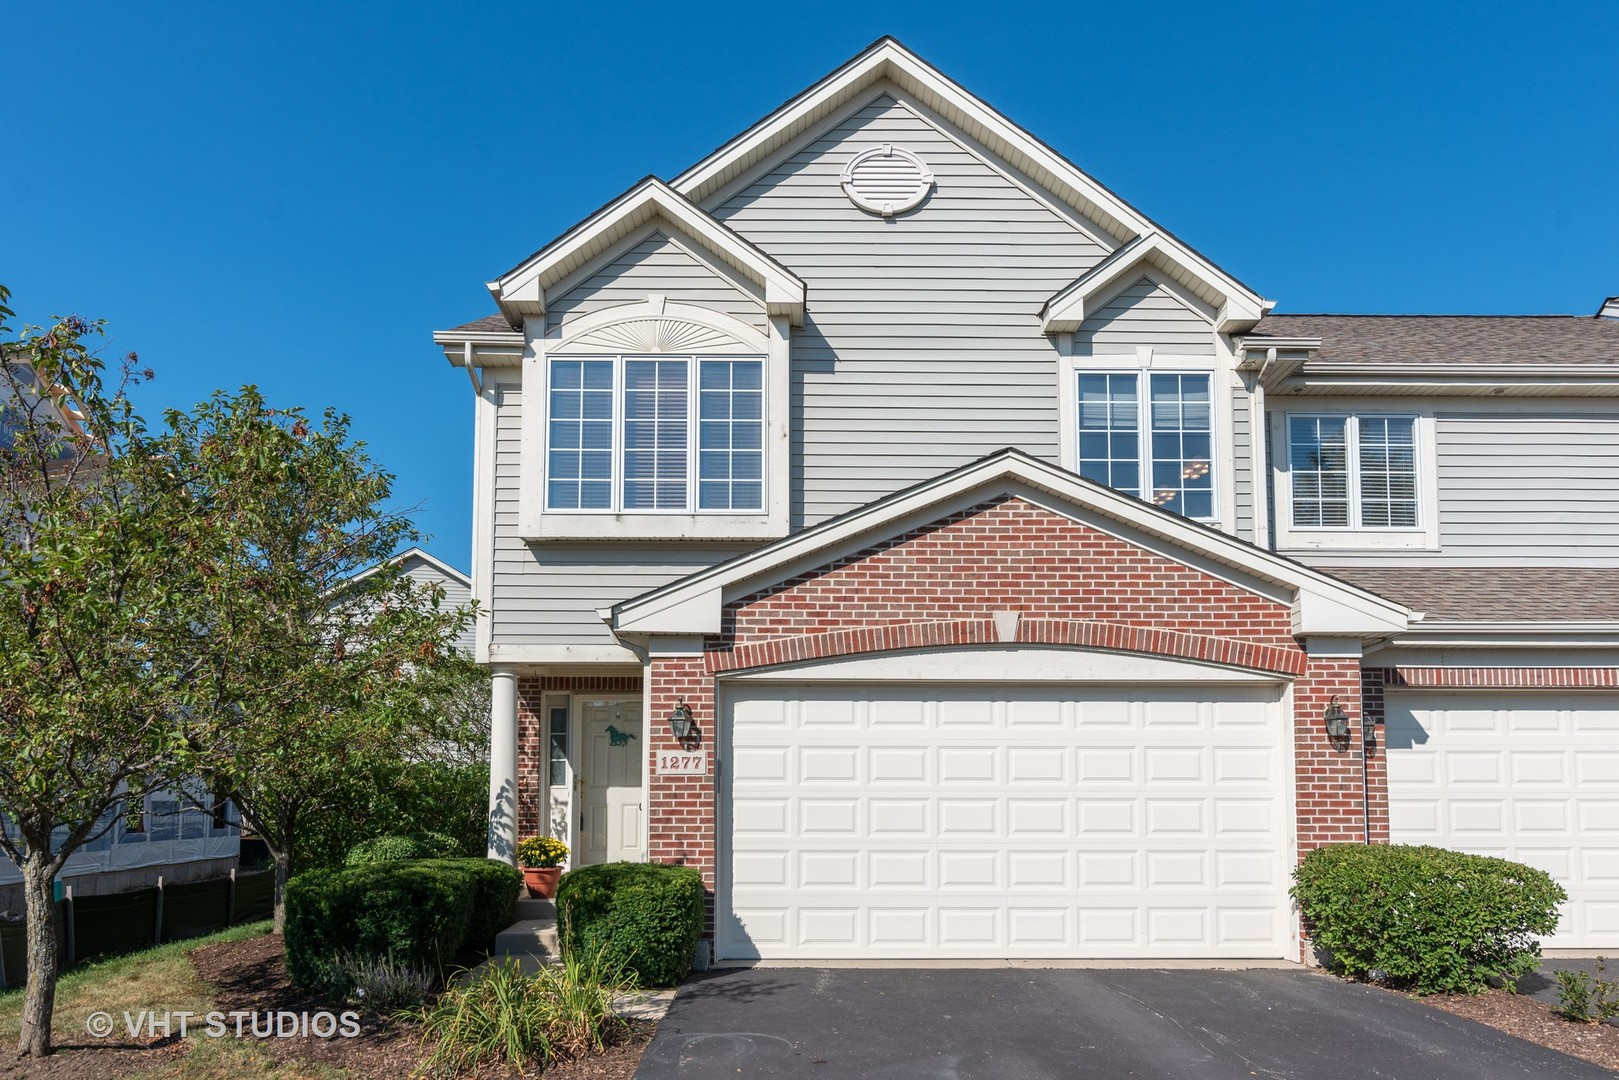 Photo for 1277 Westlake Drive, Cary, IL 60013 (MLS # 10829723)